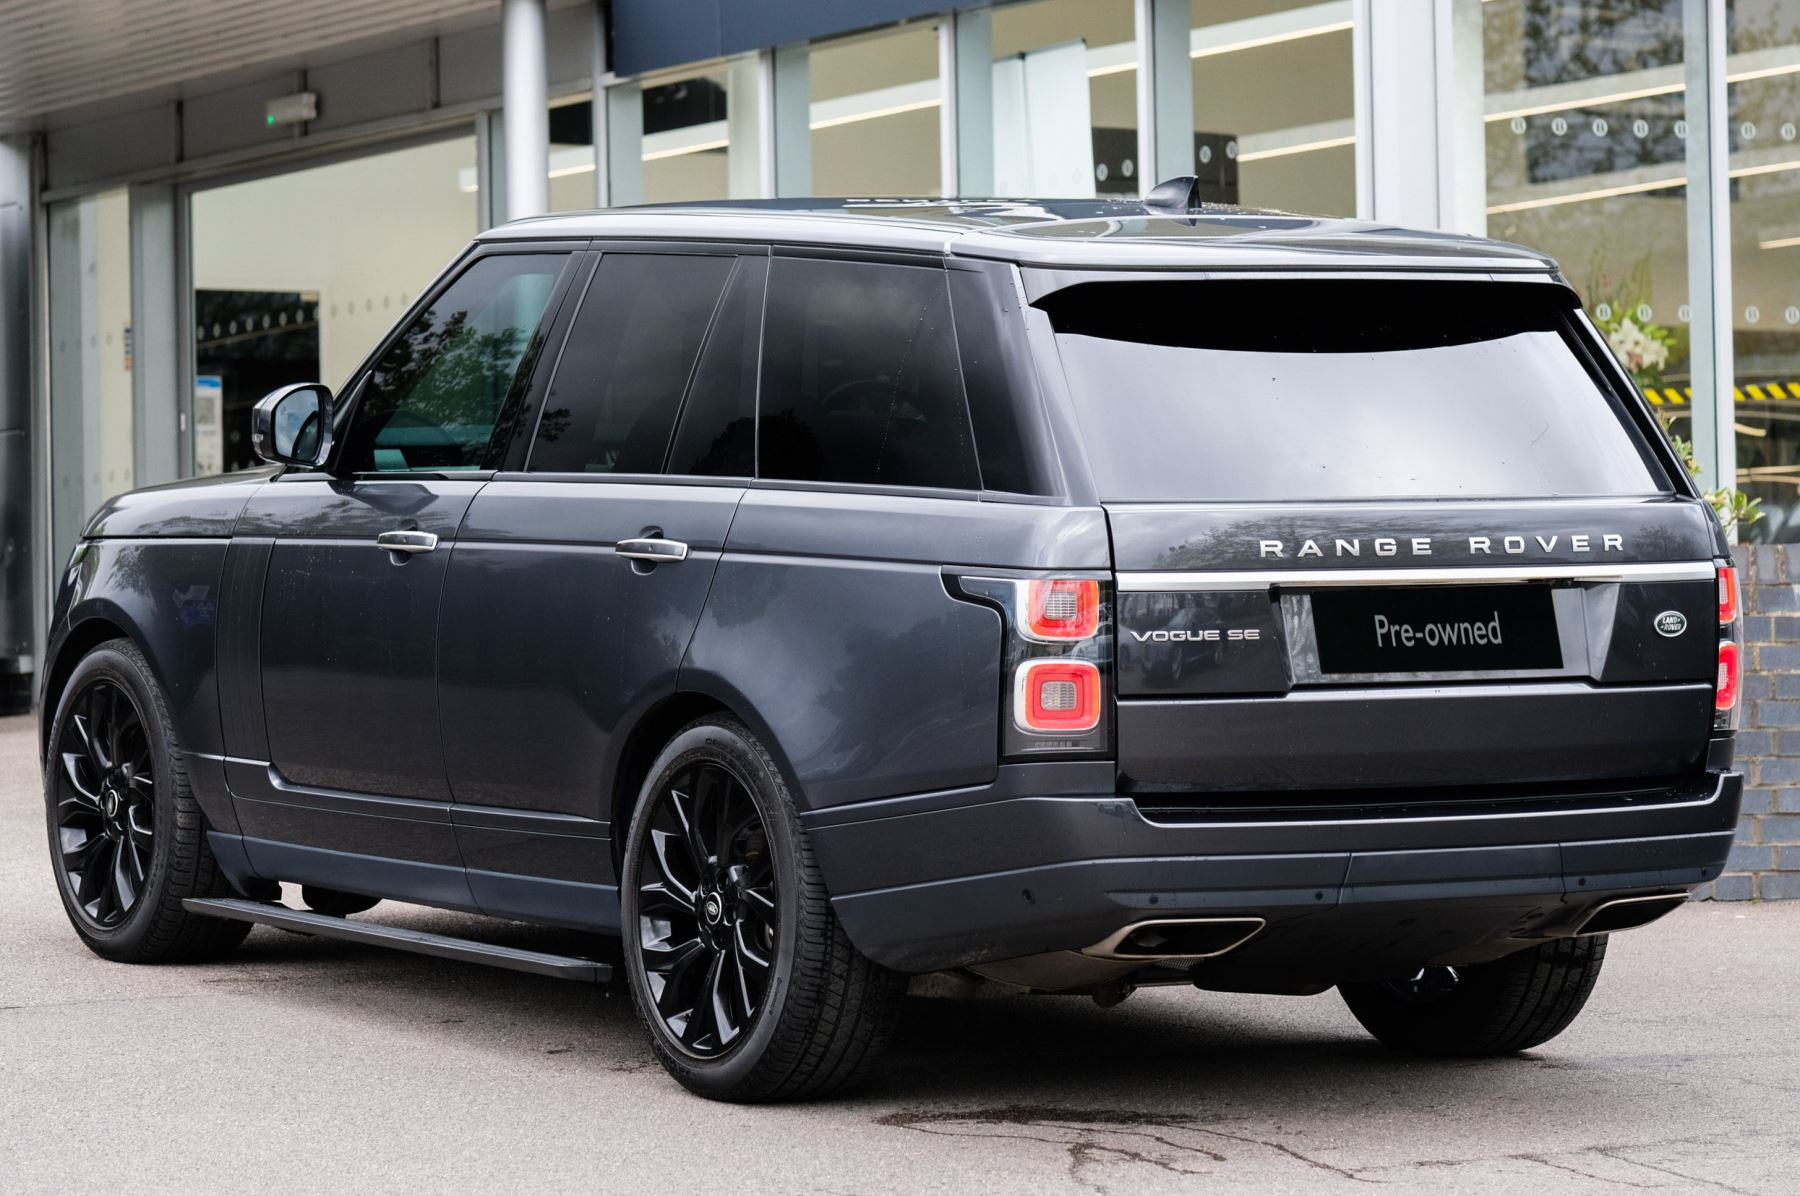 Land Rover Range Rover 3.0 SDV6 Vogue SE - Panoramic Roof - Privacy Glass - 21 inch Alloys image 4